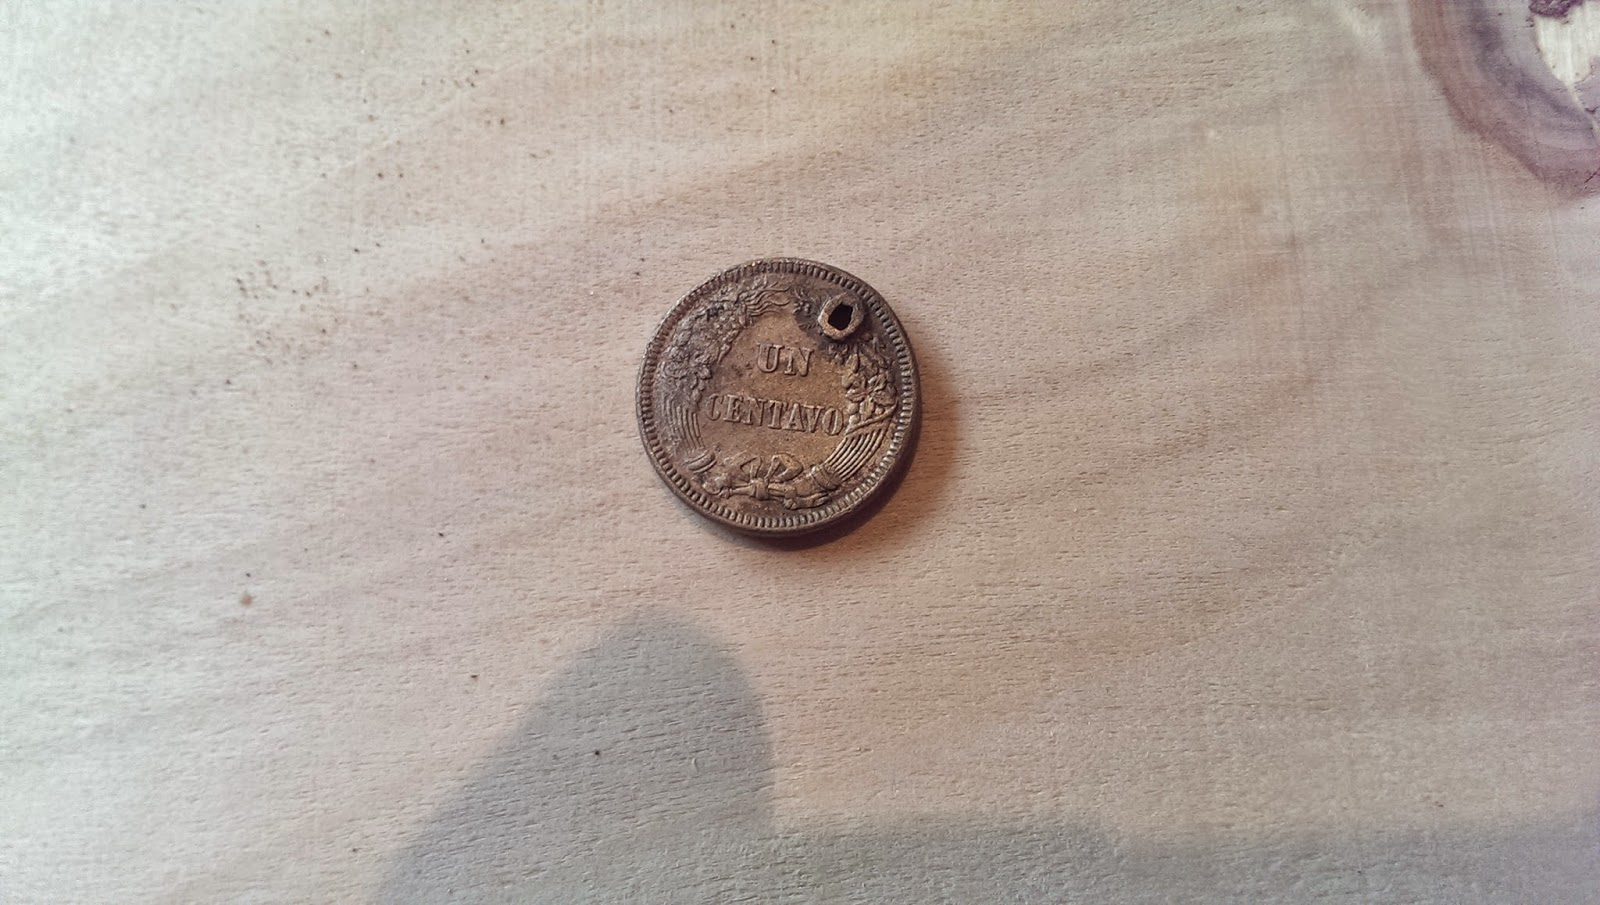 A picture of an unknown coin found while metal detecting